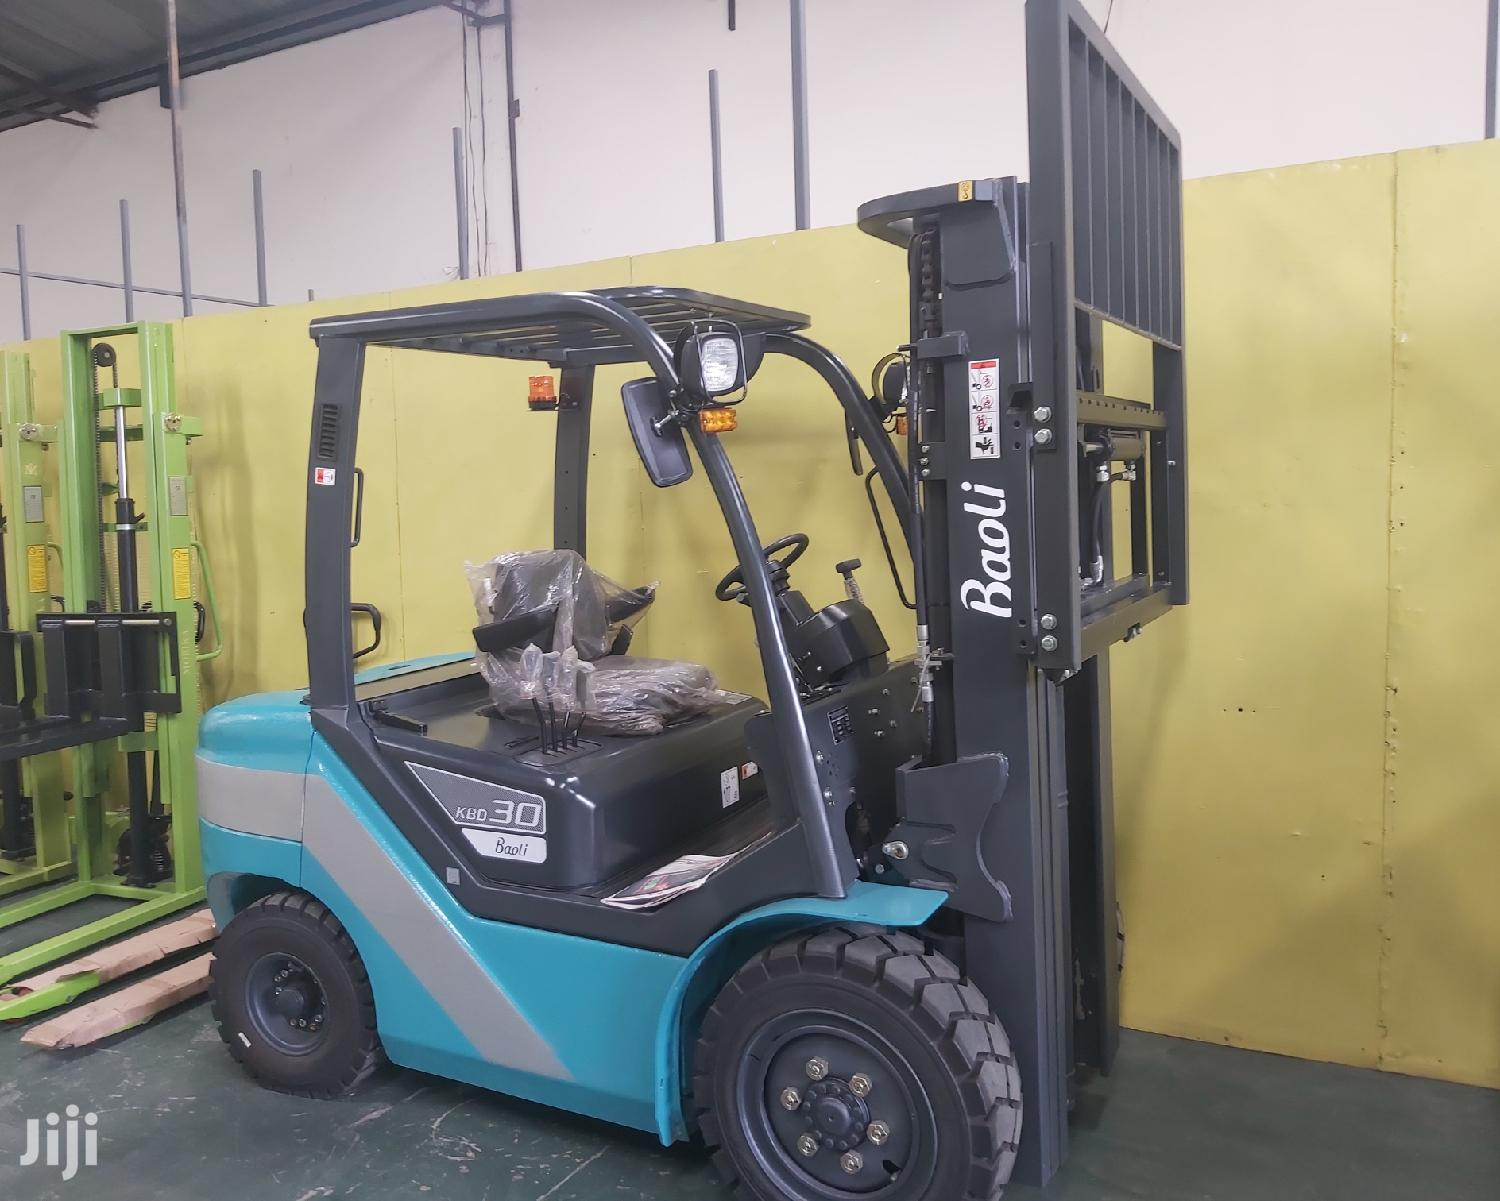 Kion Baoli Fork Lift LPG | Heavy Equipment for sale in Kampala, Central Region, Uganda